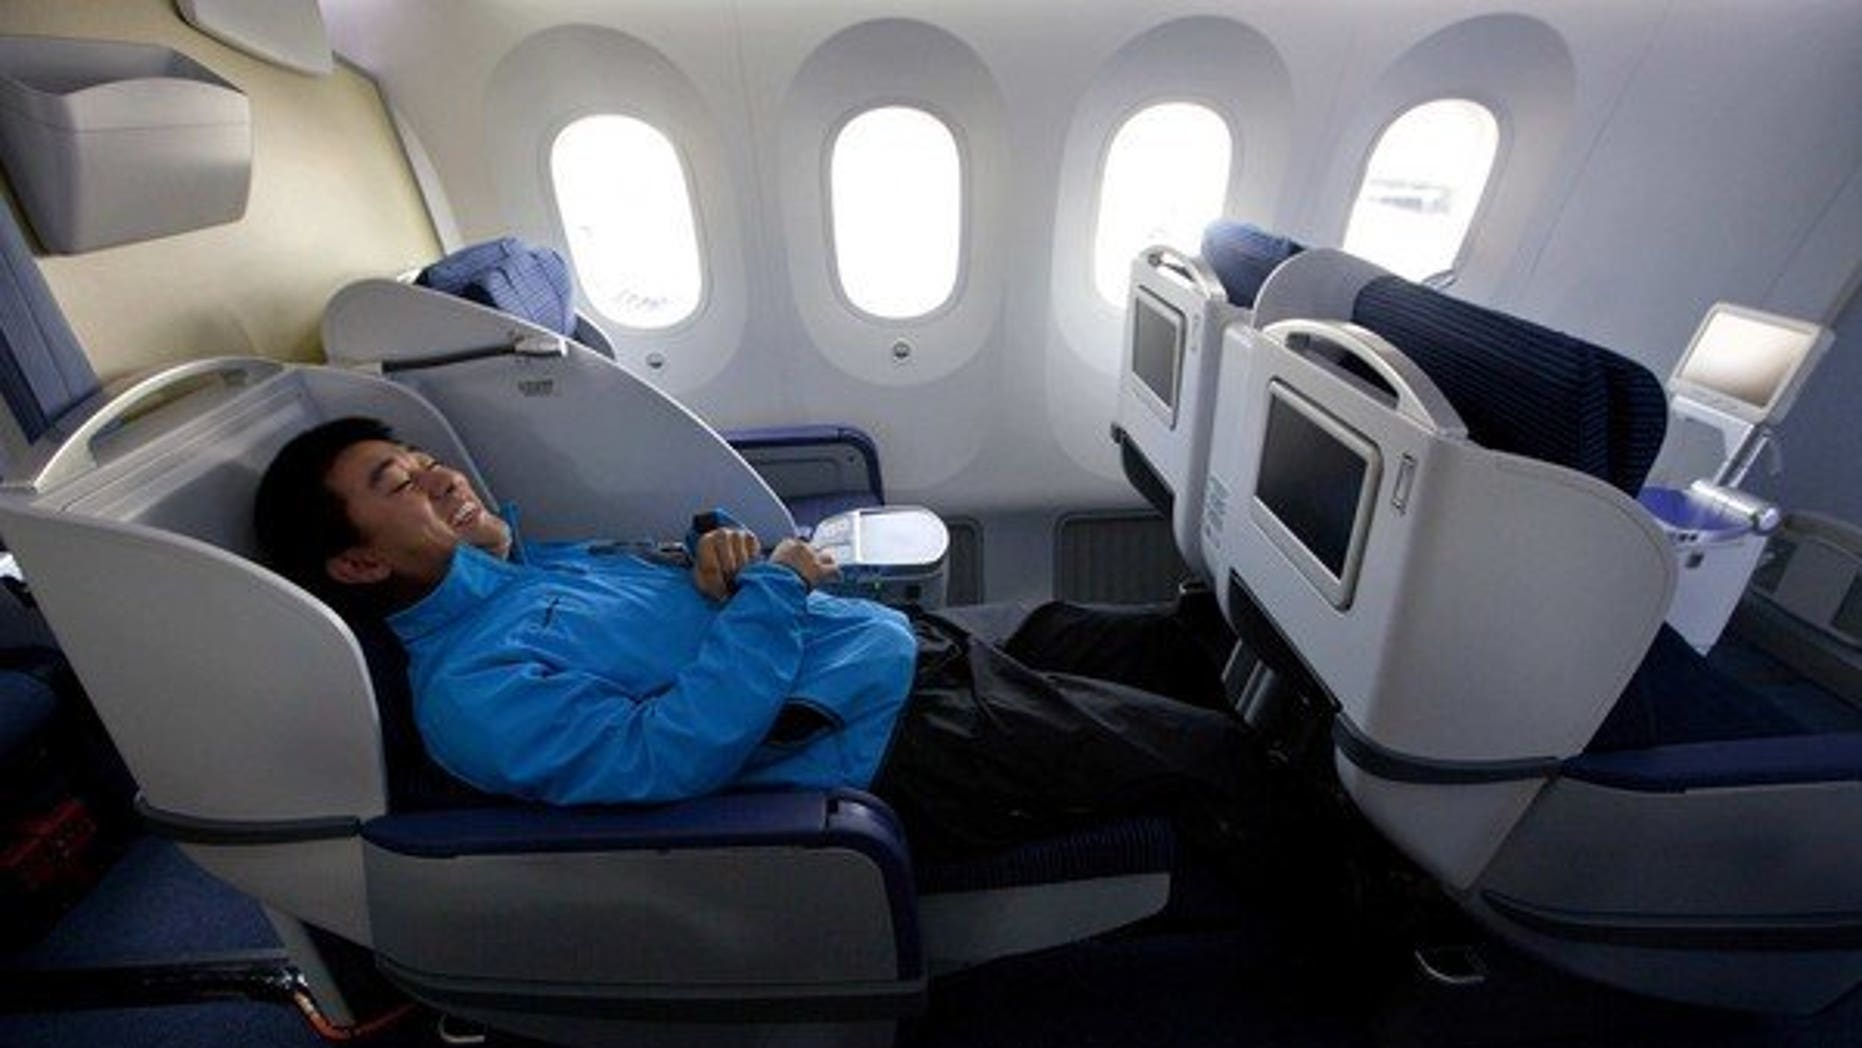 Business class aboard ANA airlines.